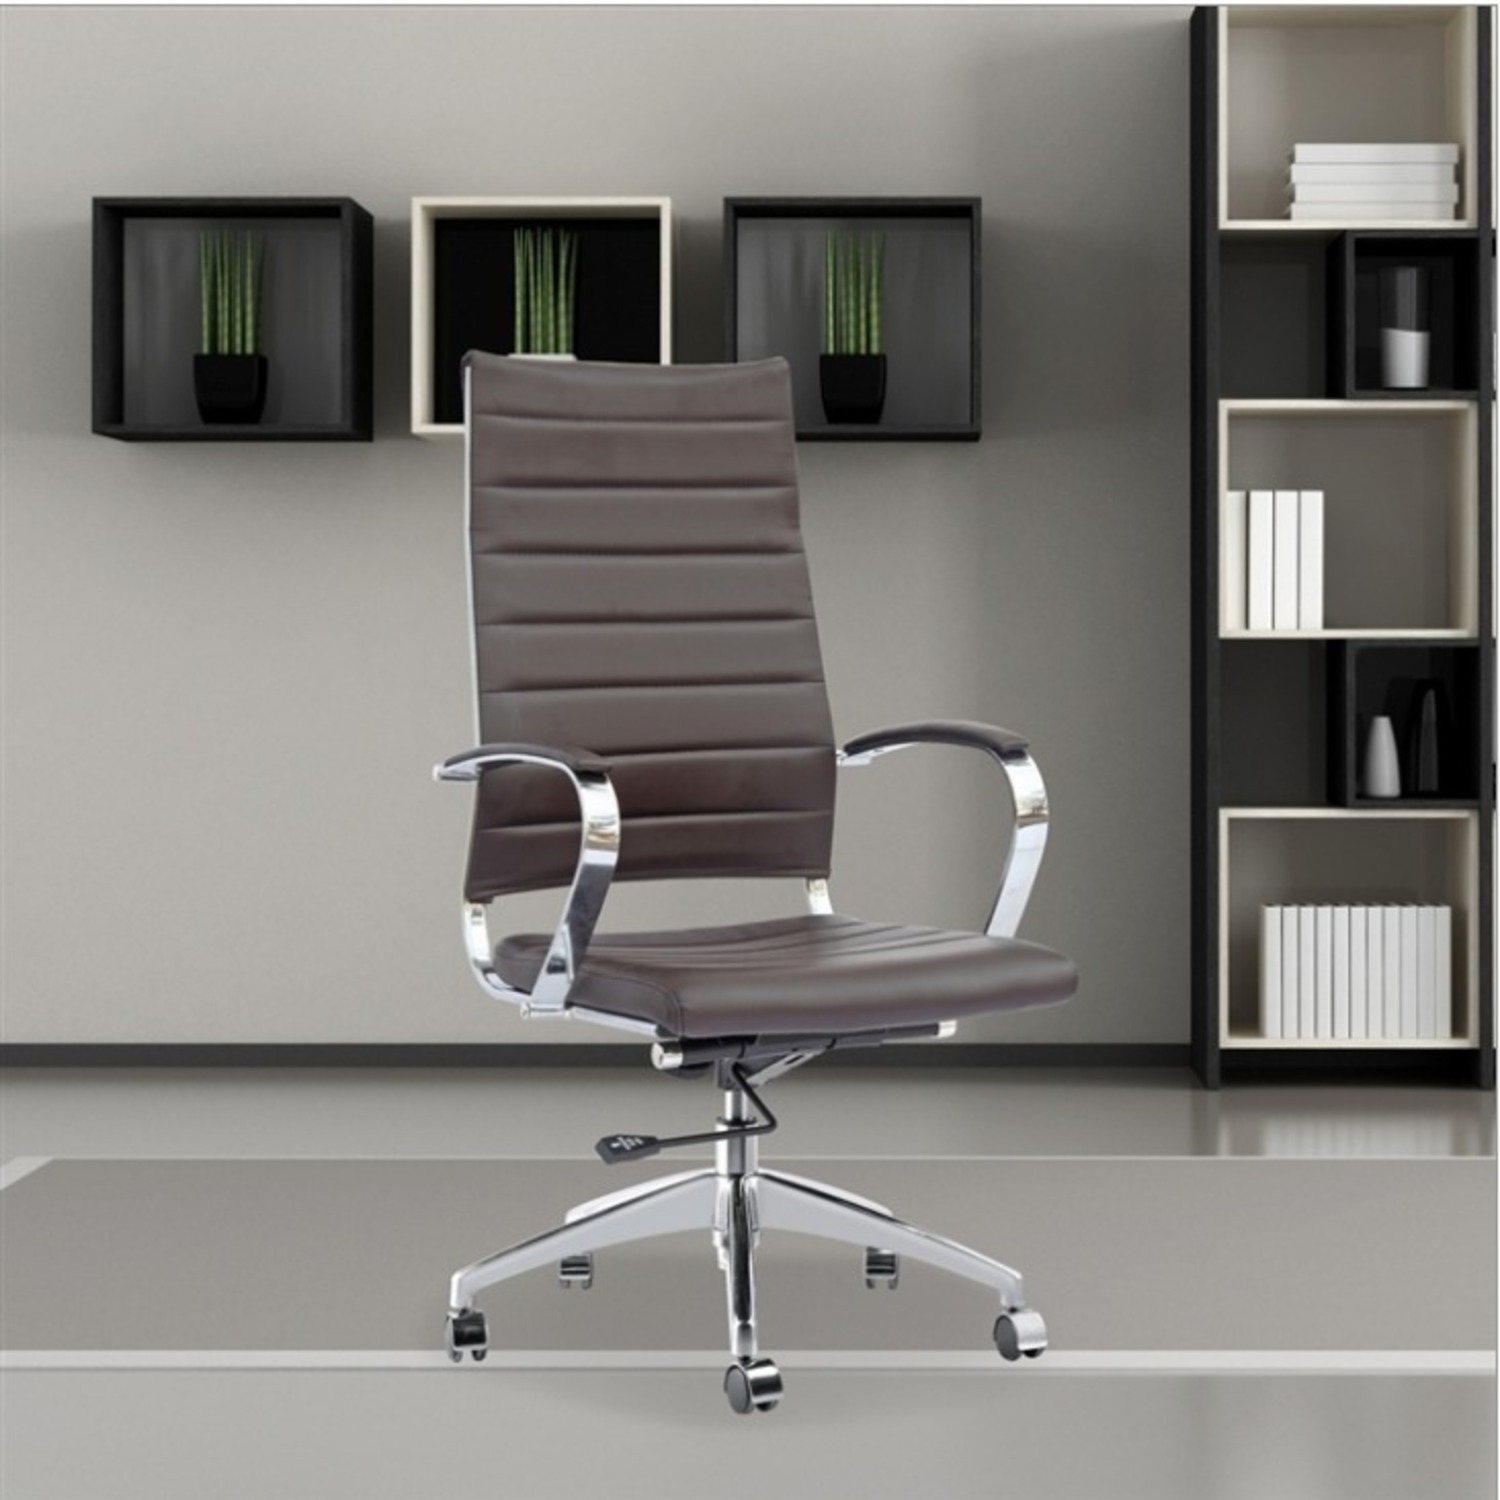 Office Chair W/ High Back Seat In Dark Brown - image-2